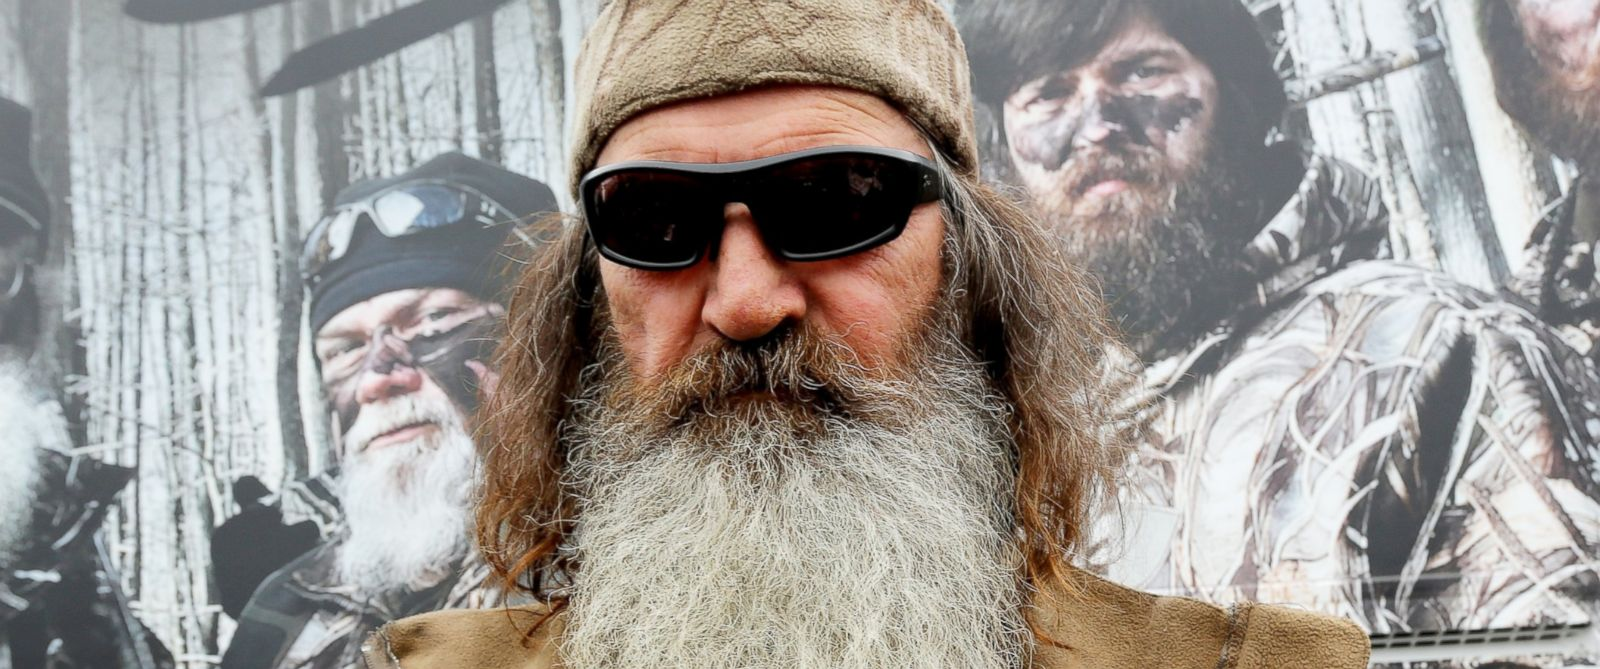 PHOTO: Reality TV personality Phil Robertson greets fans in the Duck Commander Compound at Texas Motor Speedway on April 5, 2014 in Fort Worth, Texas.